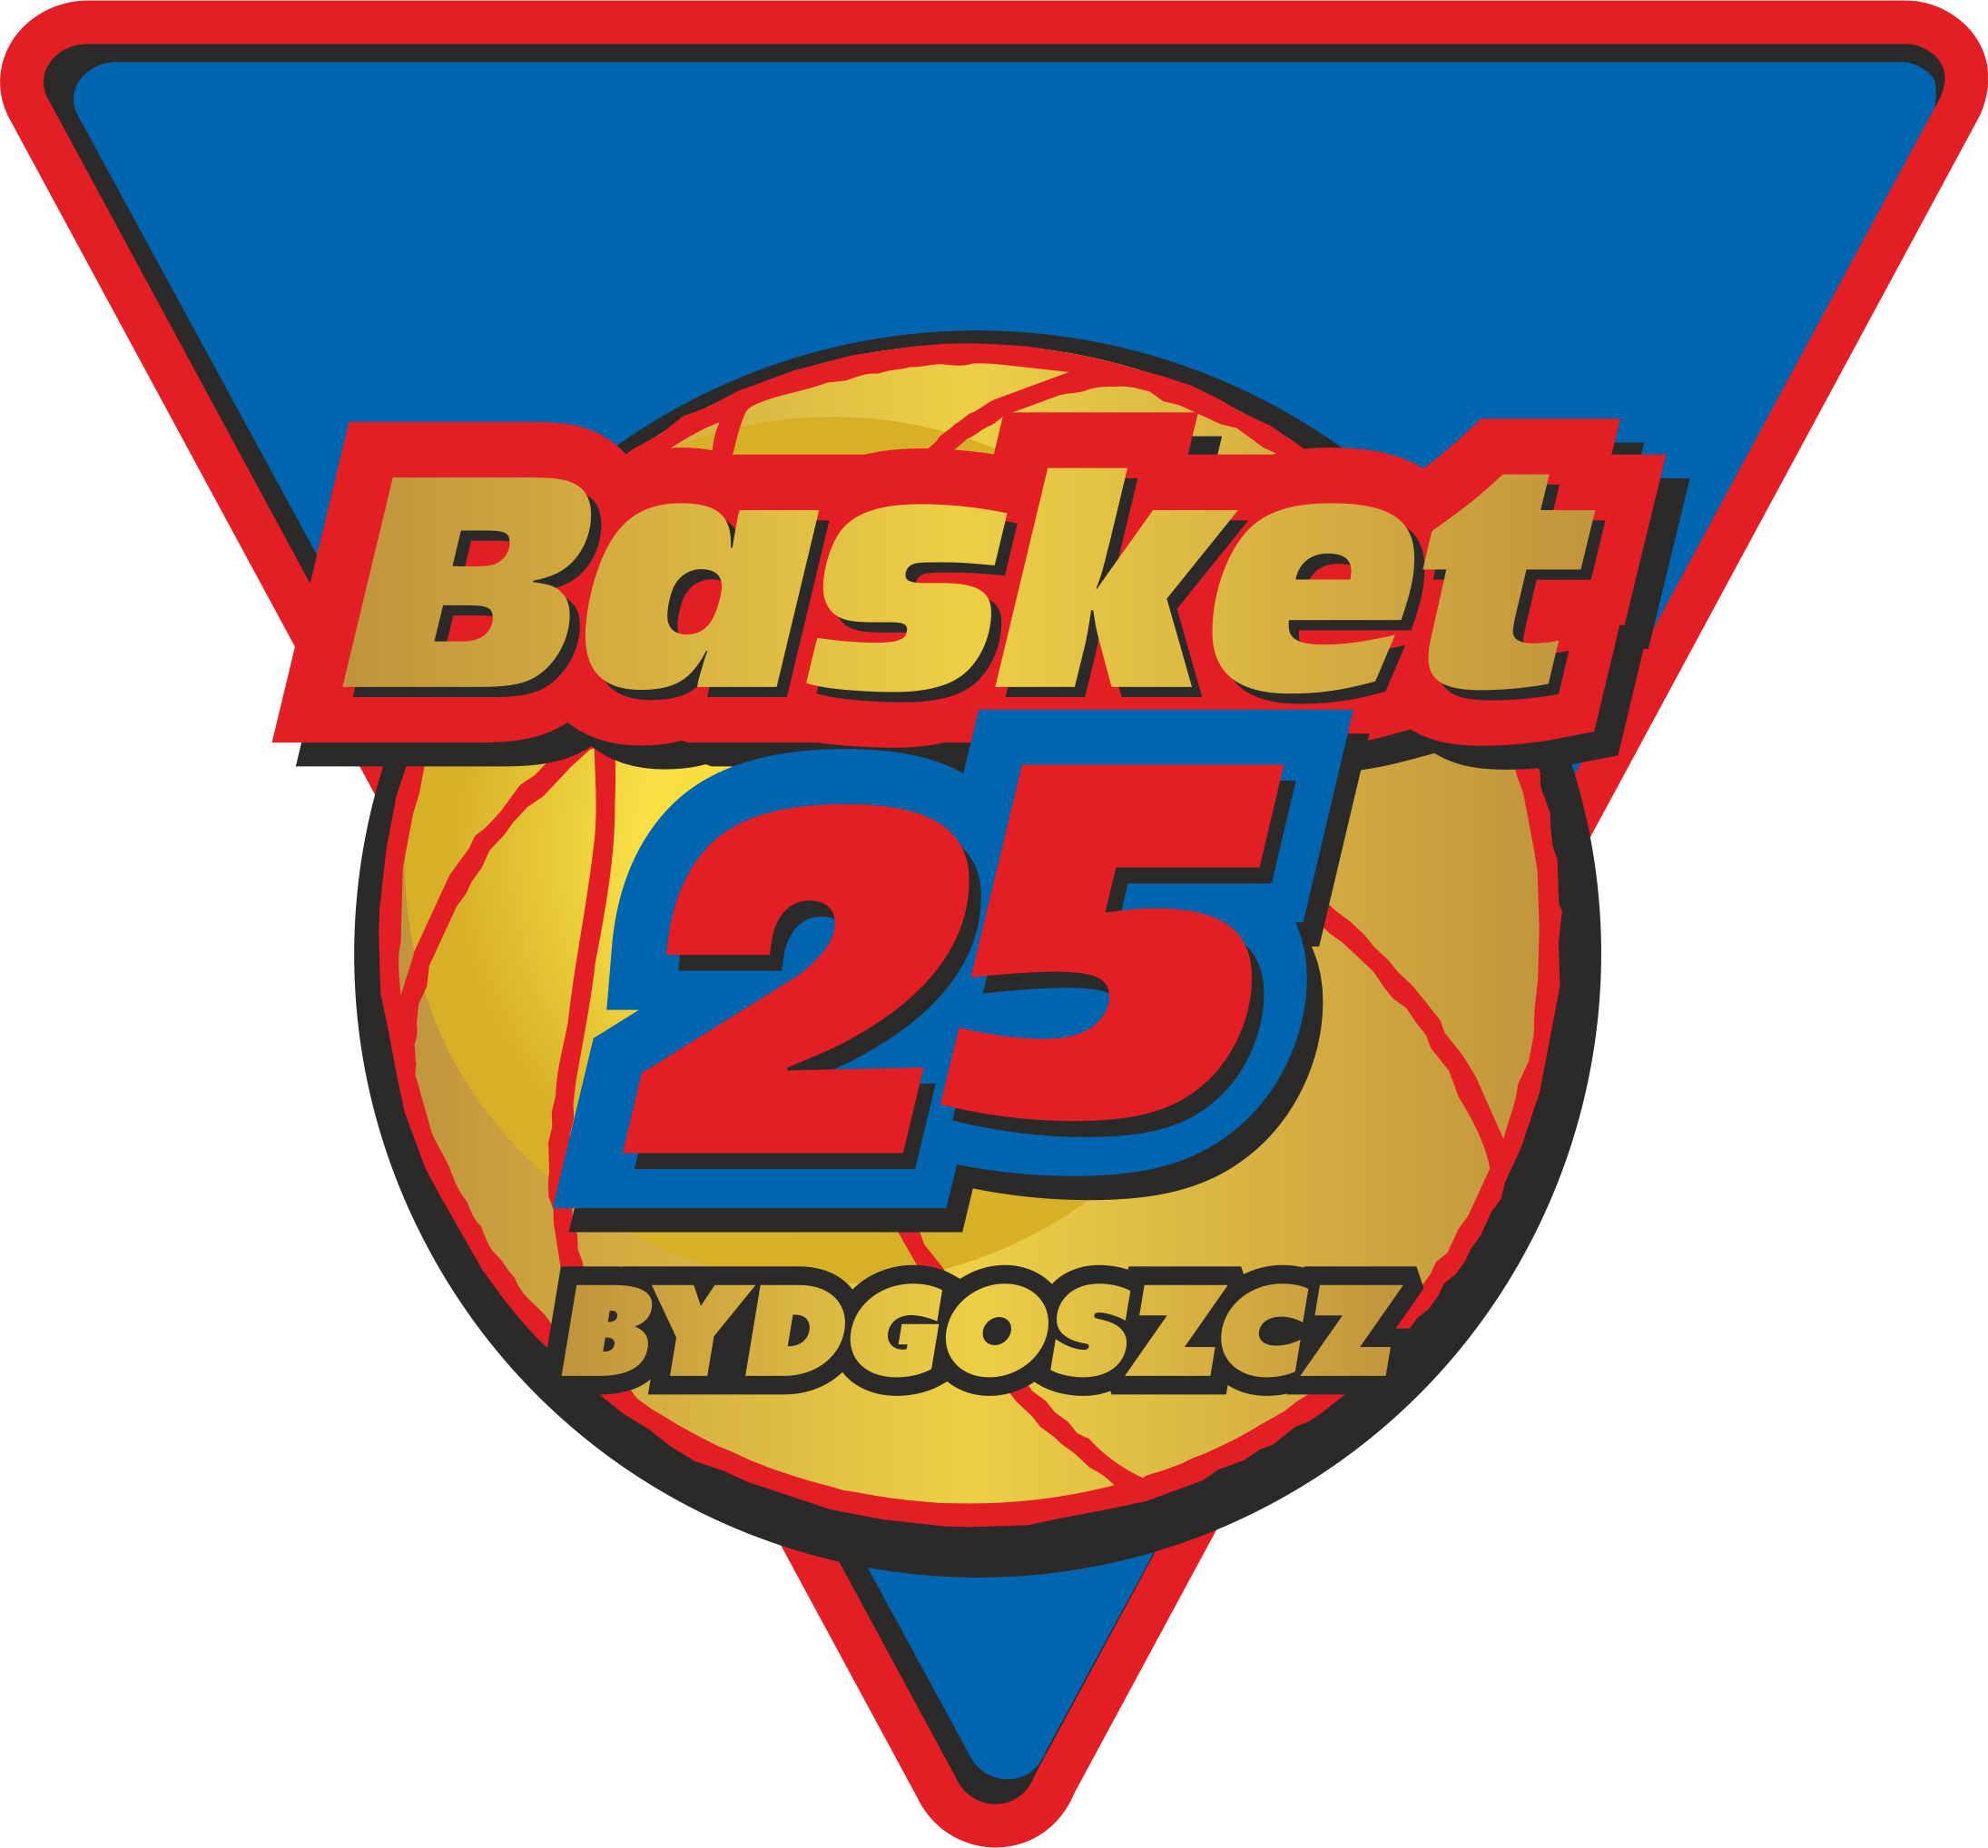 KS BASKET 25